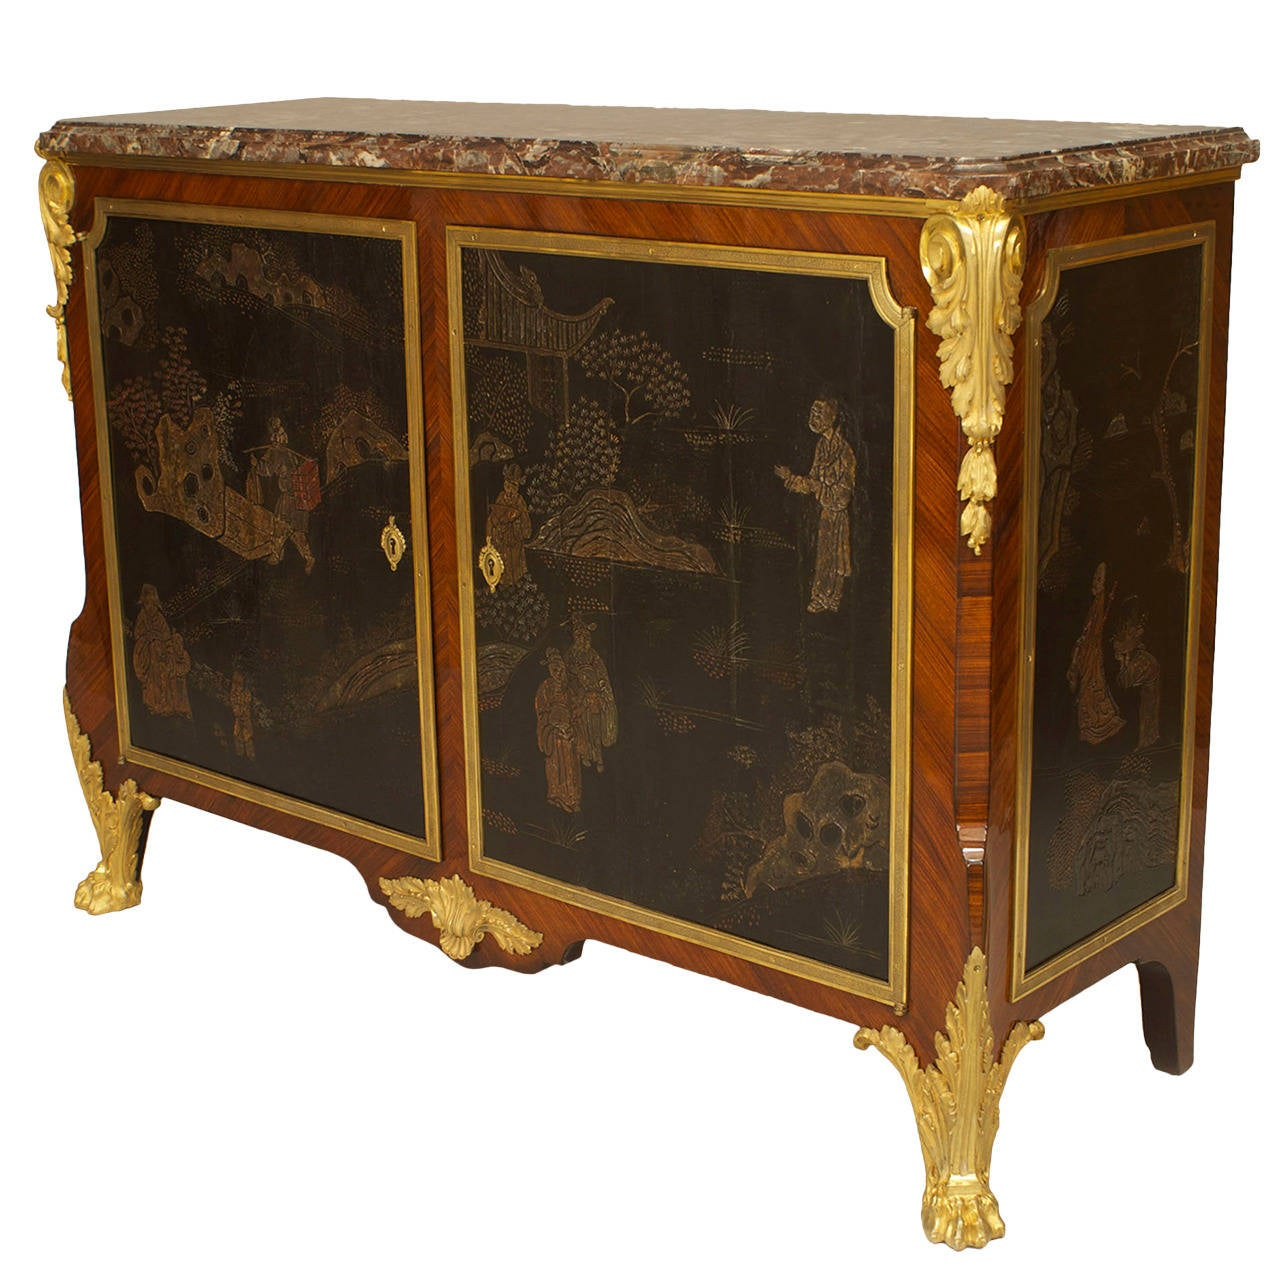 19th c french louis xv xvi style commode signed by decour for sale at 1stdibs. Black Bedroom Furniture Sets. Home Design Ideas